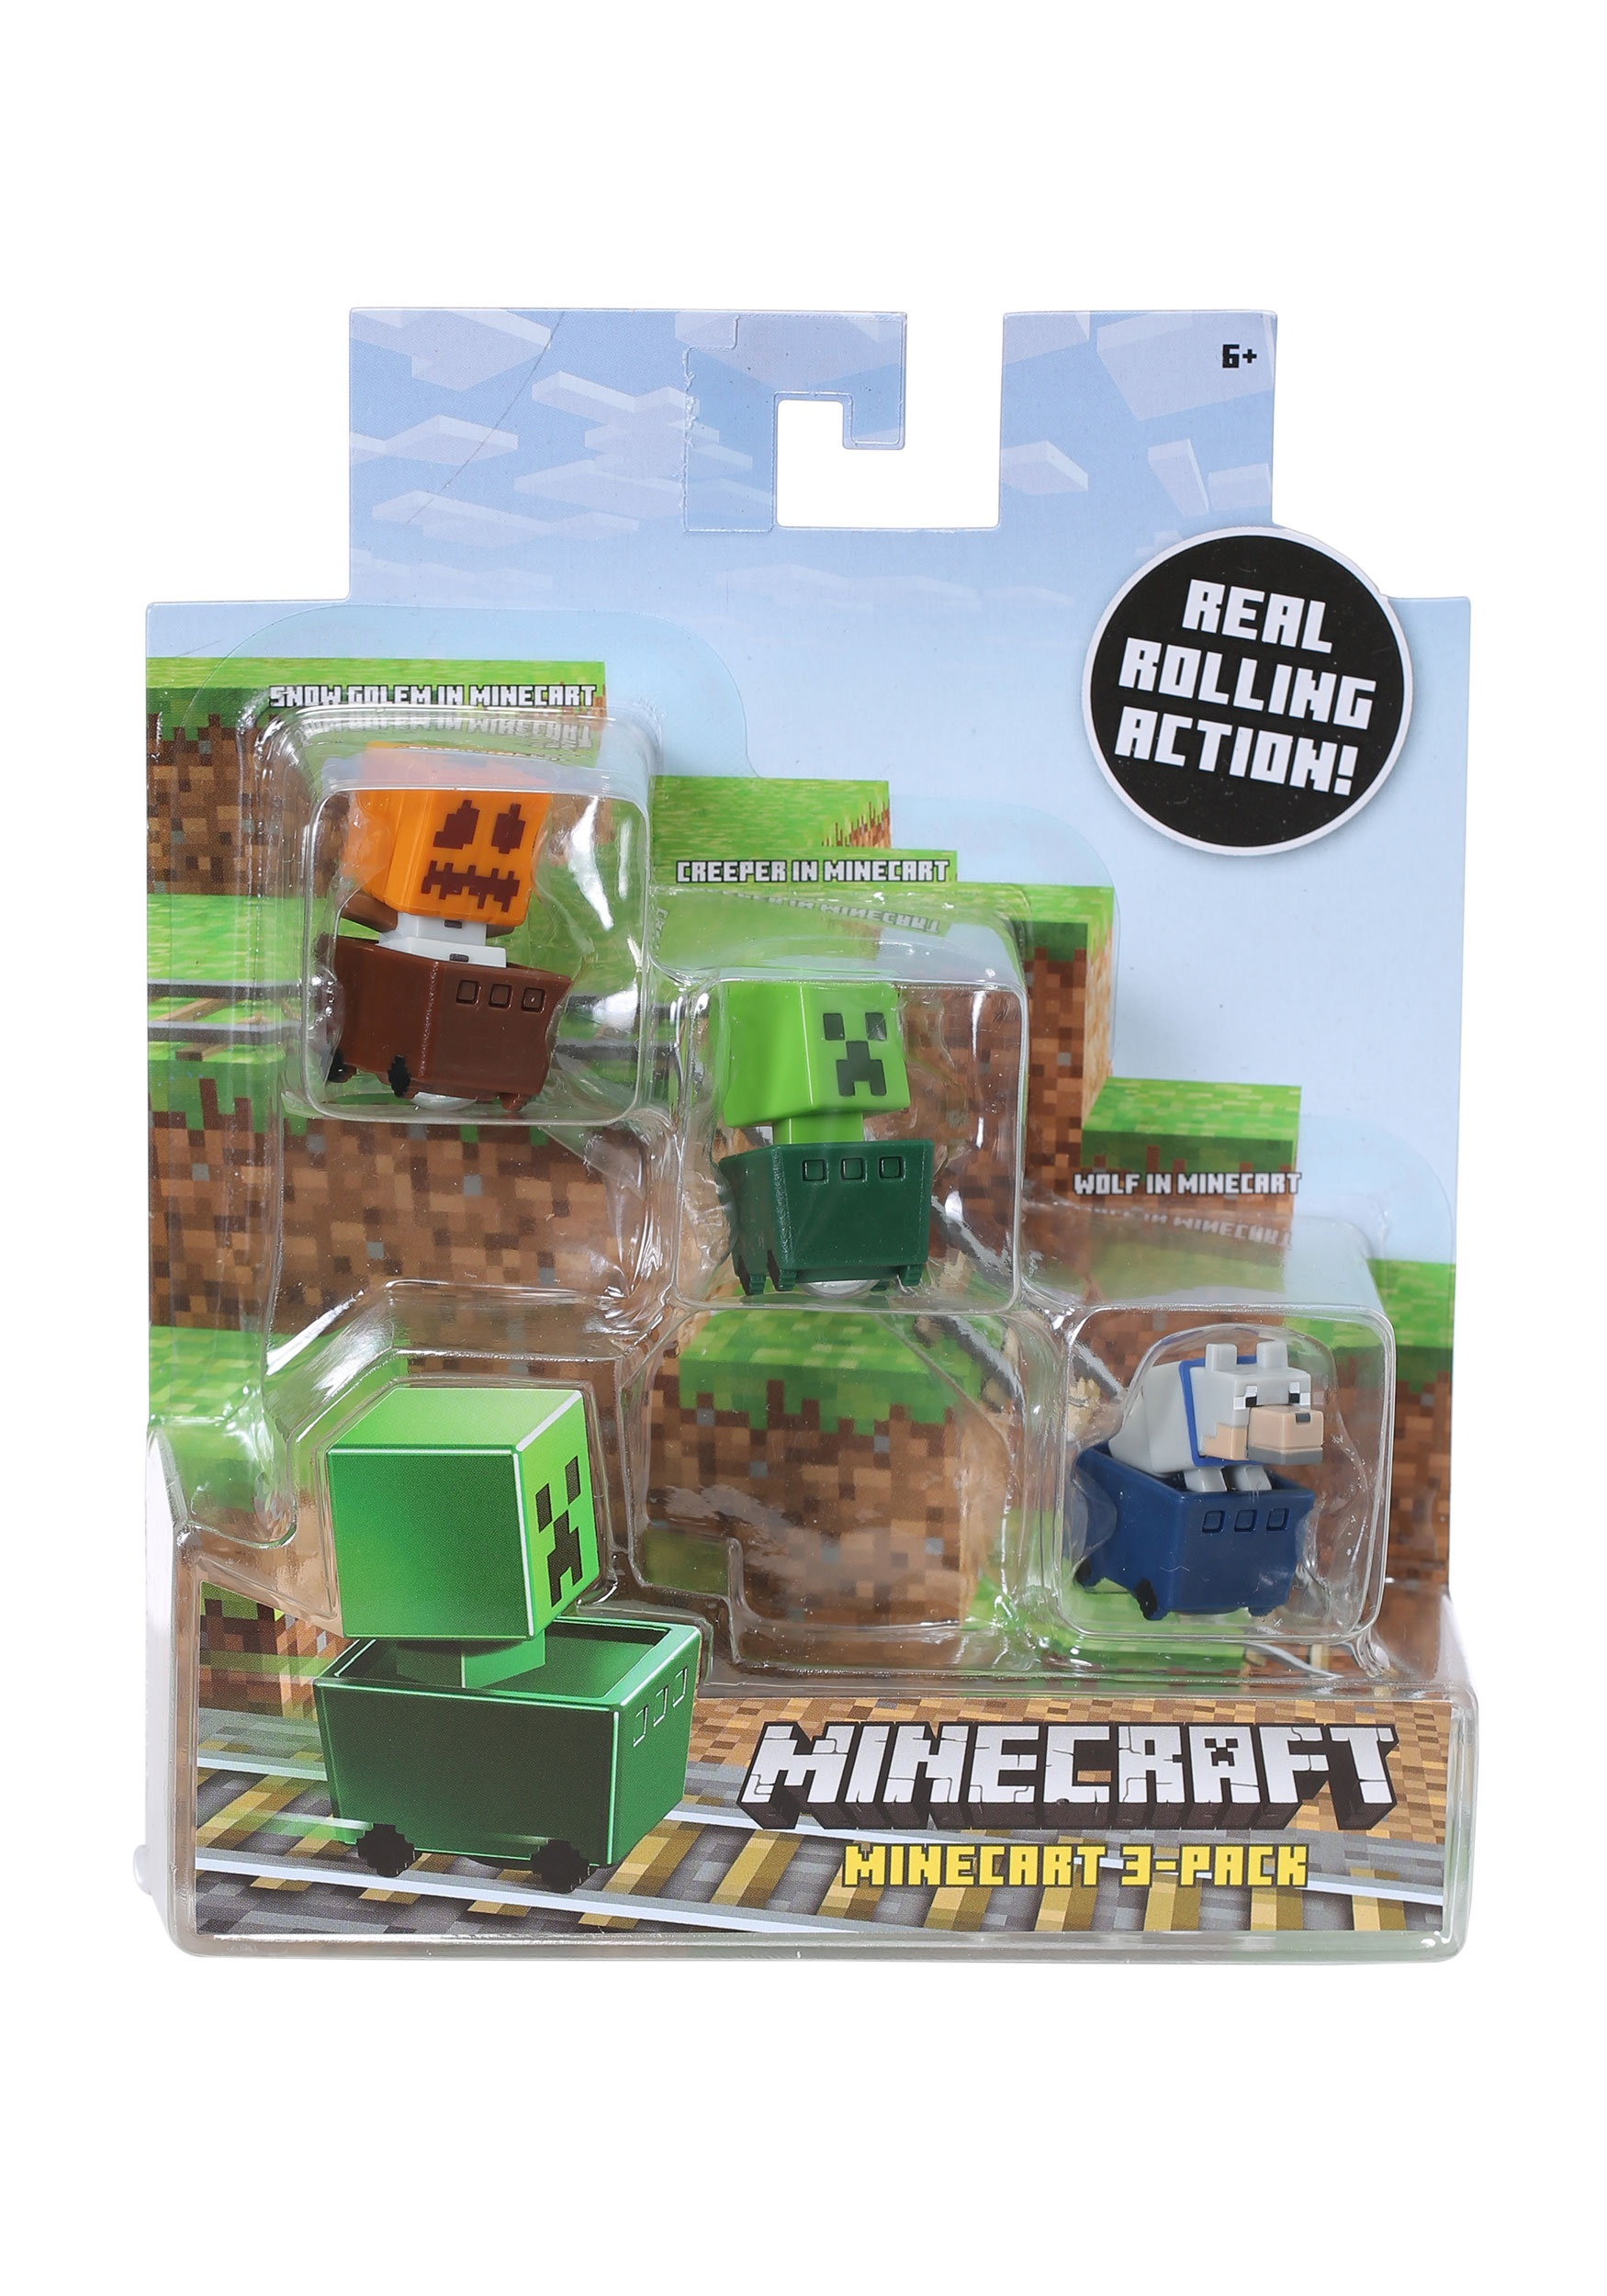 Minecraft Snow Golem, Creeper, Wolf 3 Pack Figure Set MLFFK79